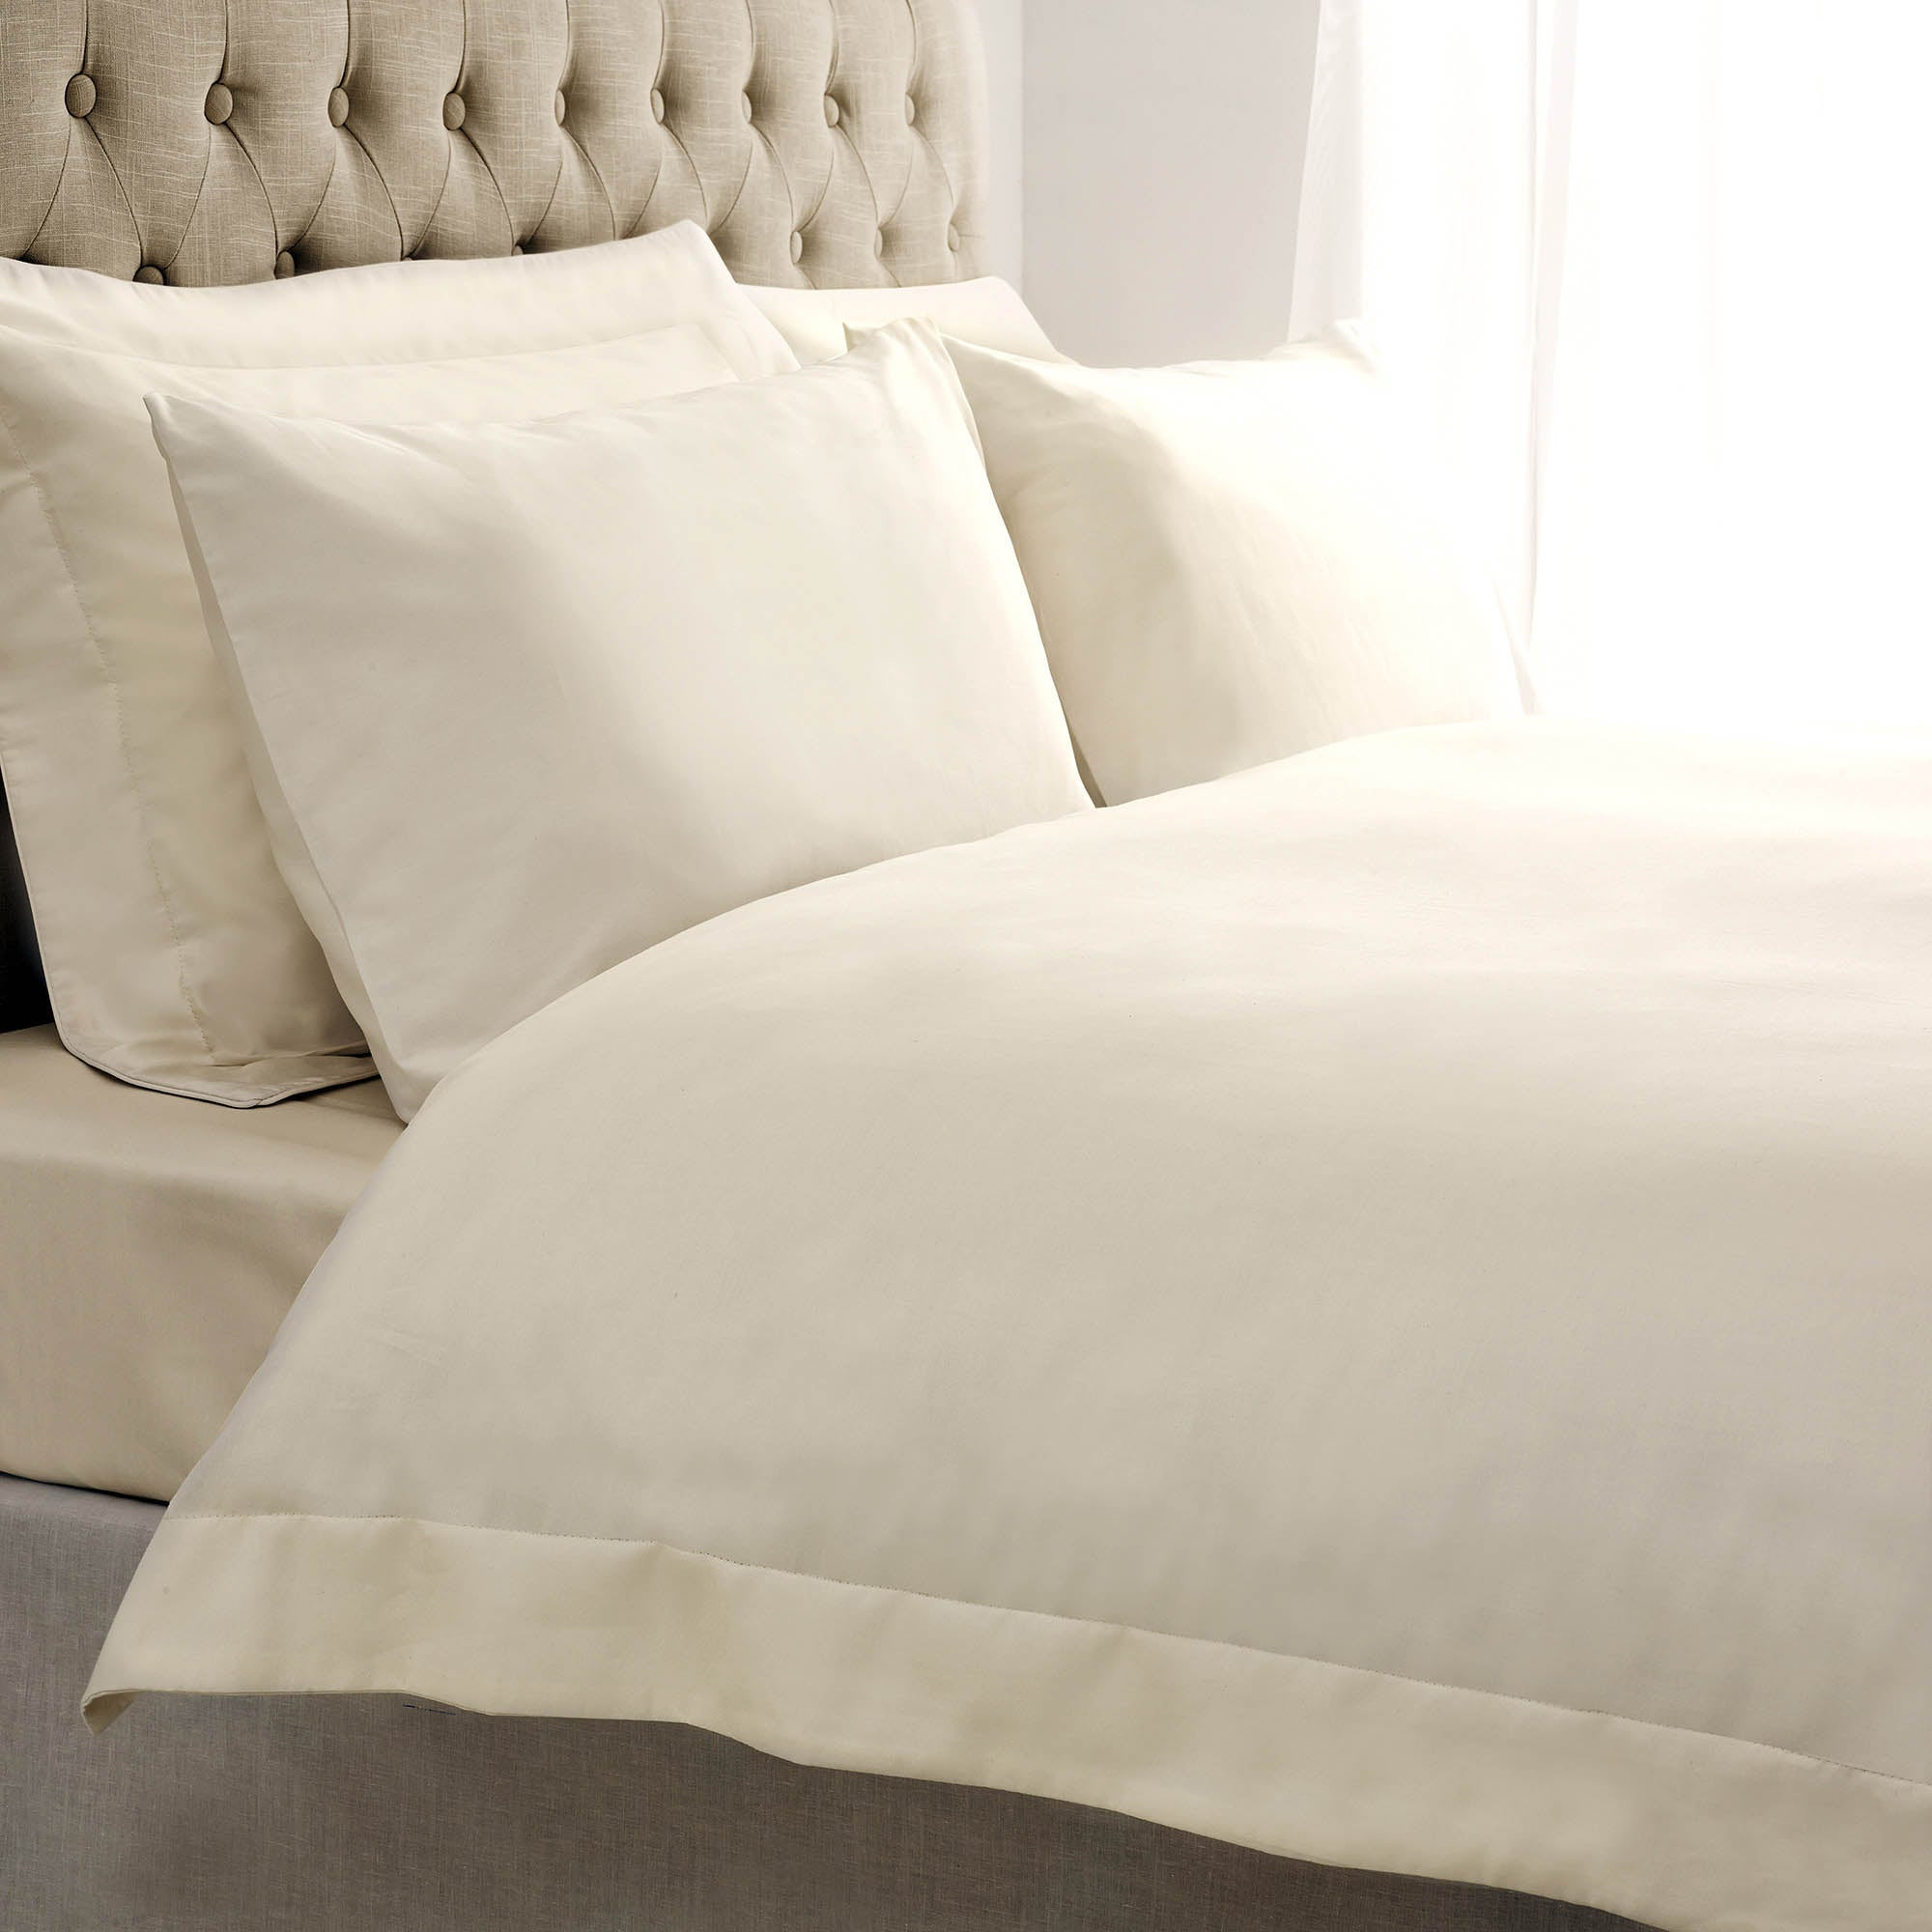 Cream Hotel Plain 300 Thread Count Bed Linen Collection